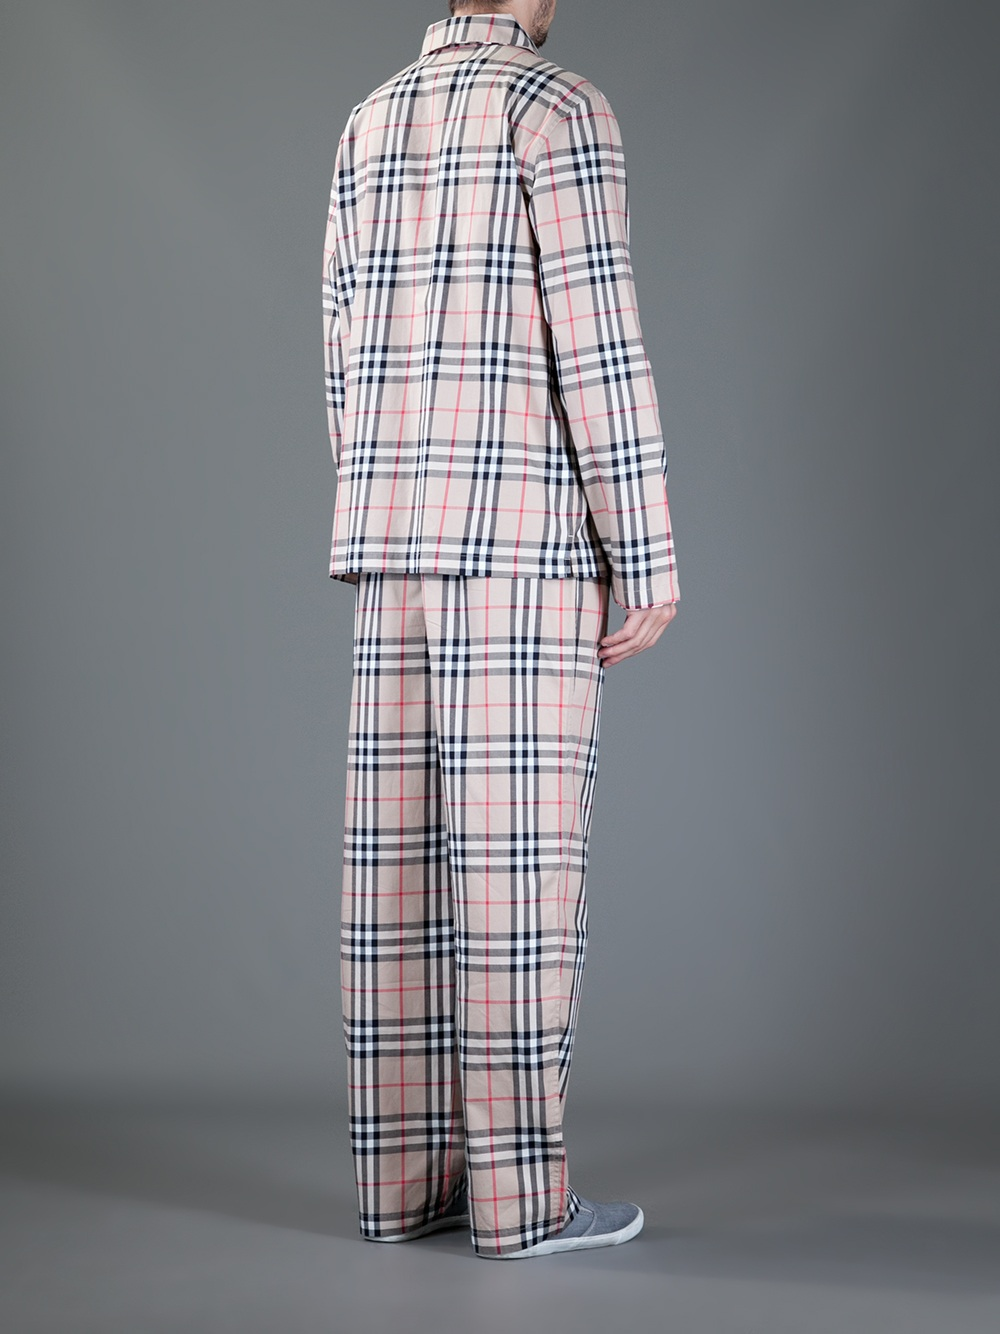 Burberry Check Cotton Pyjama Trousers in Brown for Men - Lyst